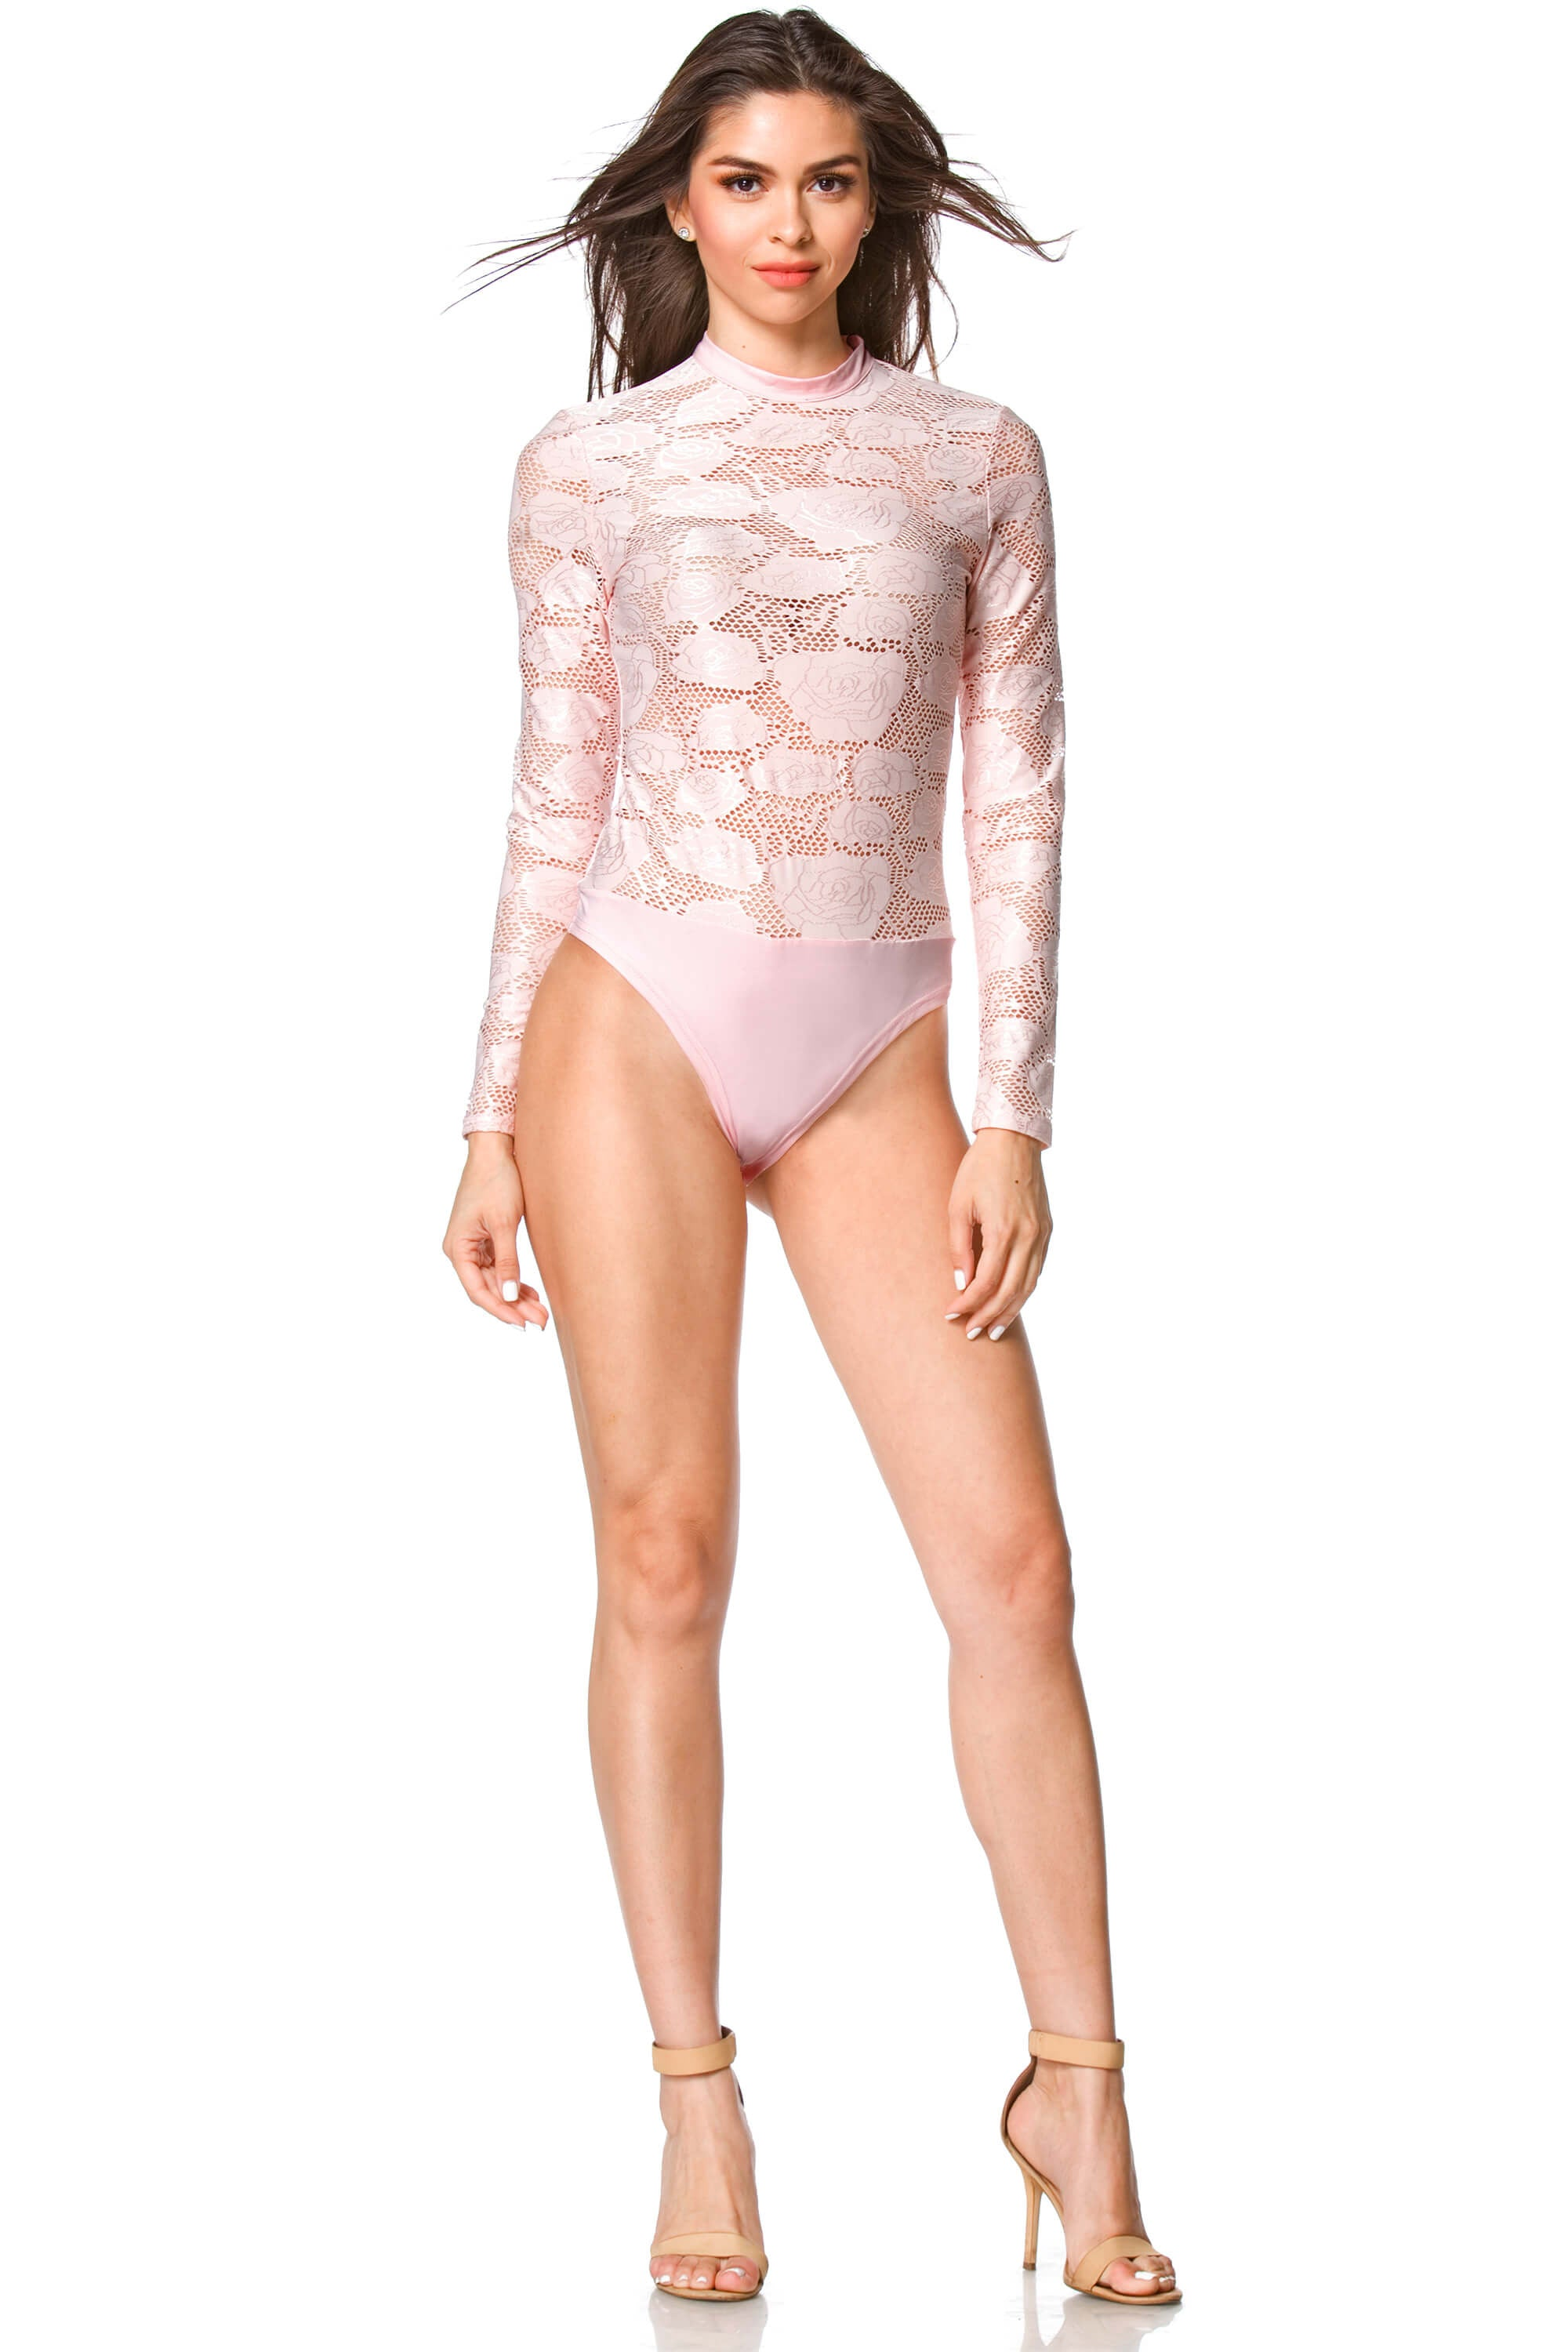 Jackie Laced Up Bodysuit for Women